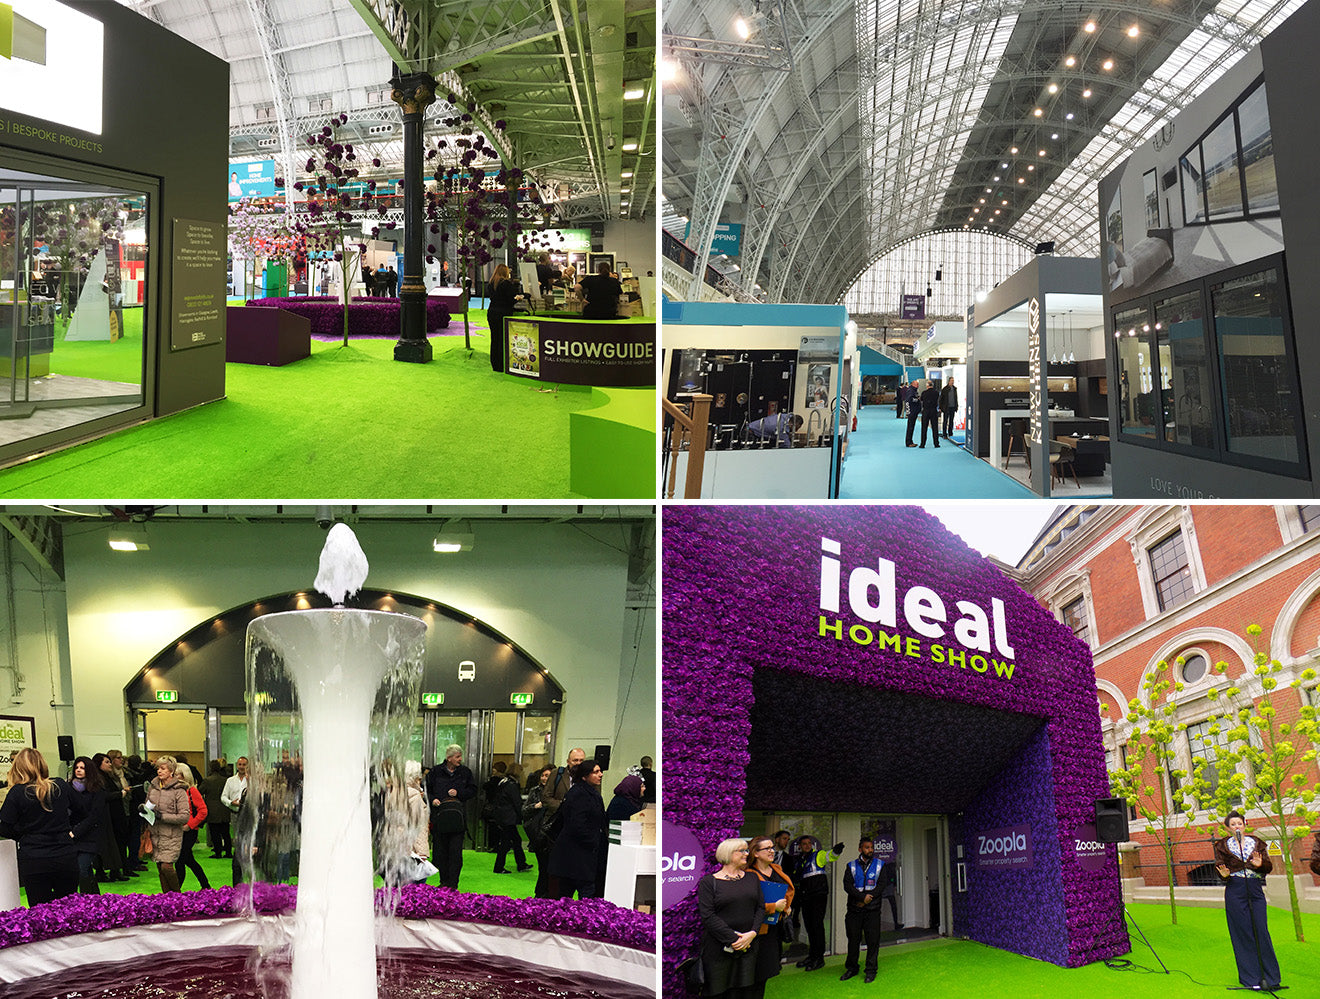 Inside the Ideal Home Show 2016 at Olympia